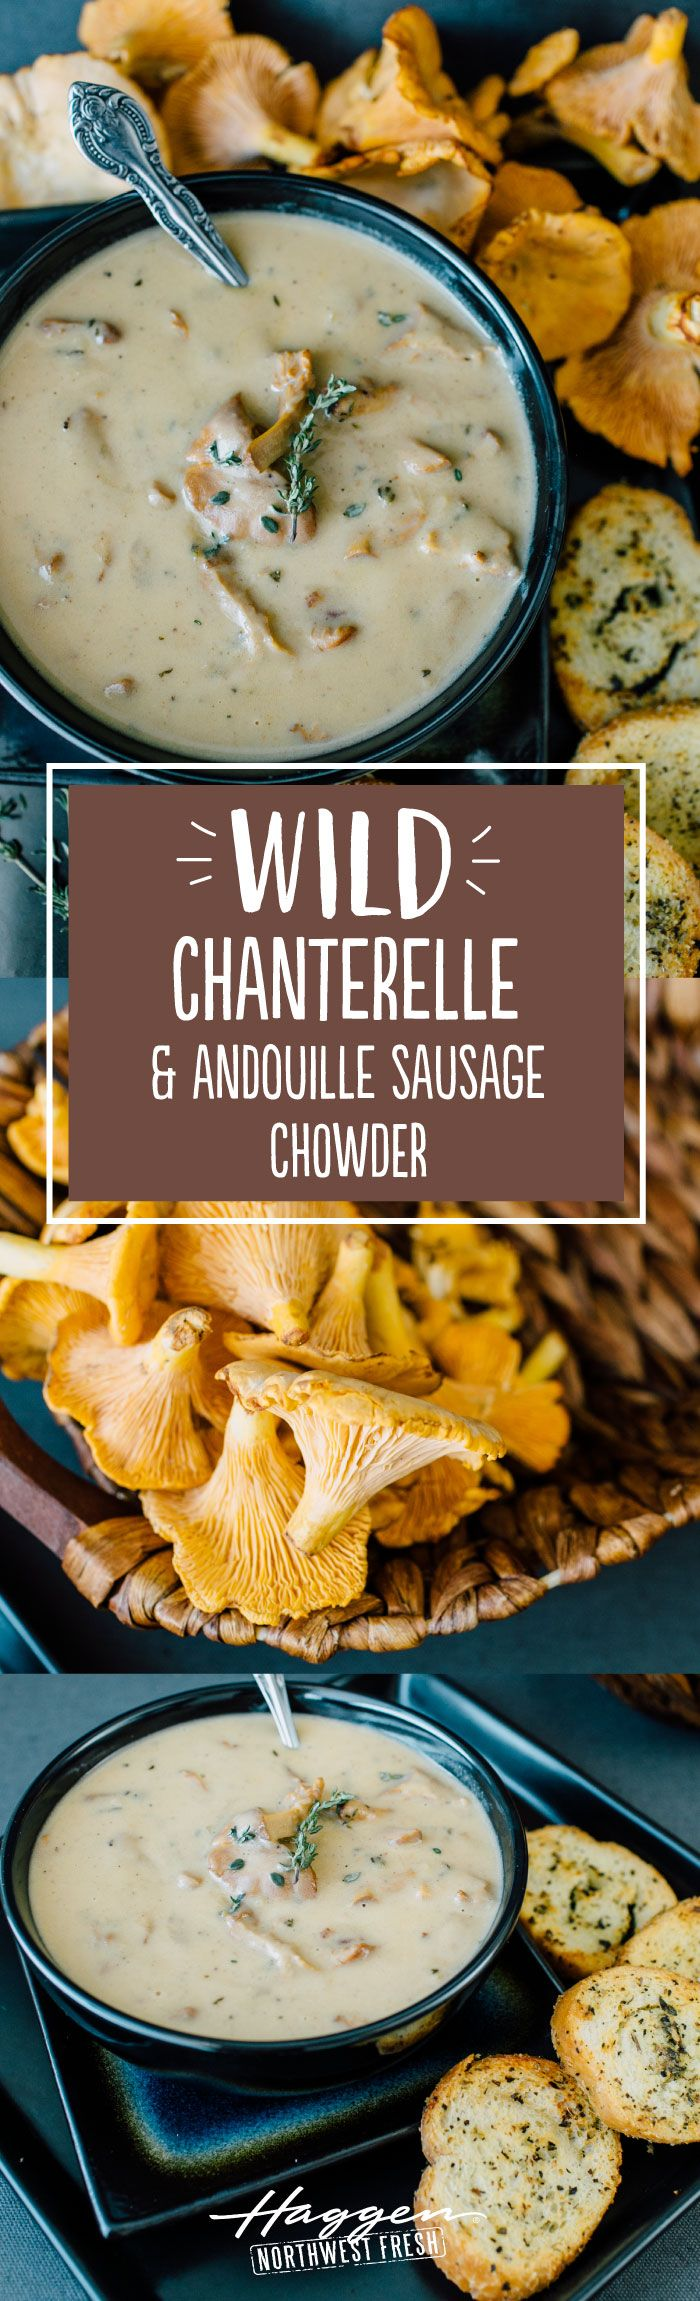 Wild chanterelle and andouille sausage chowder